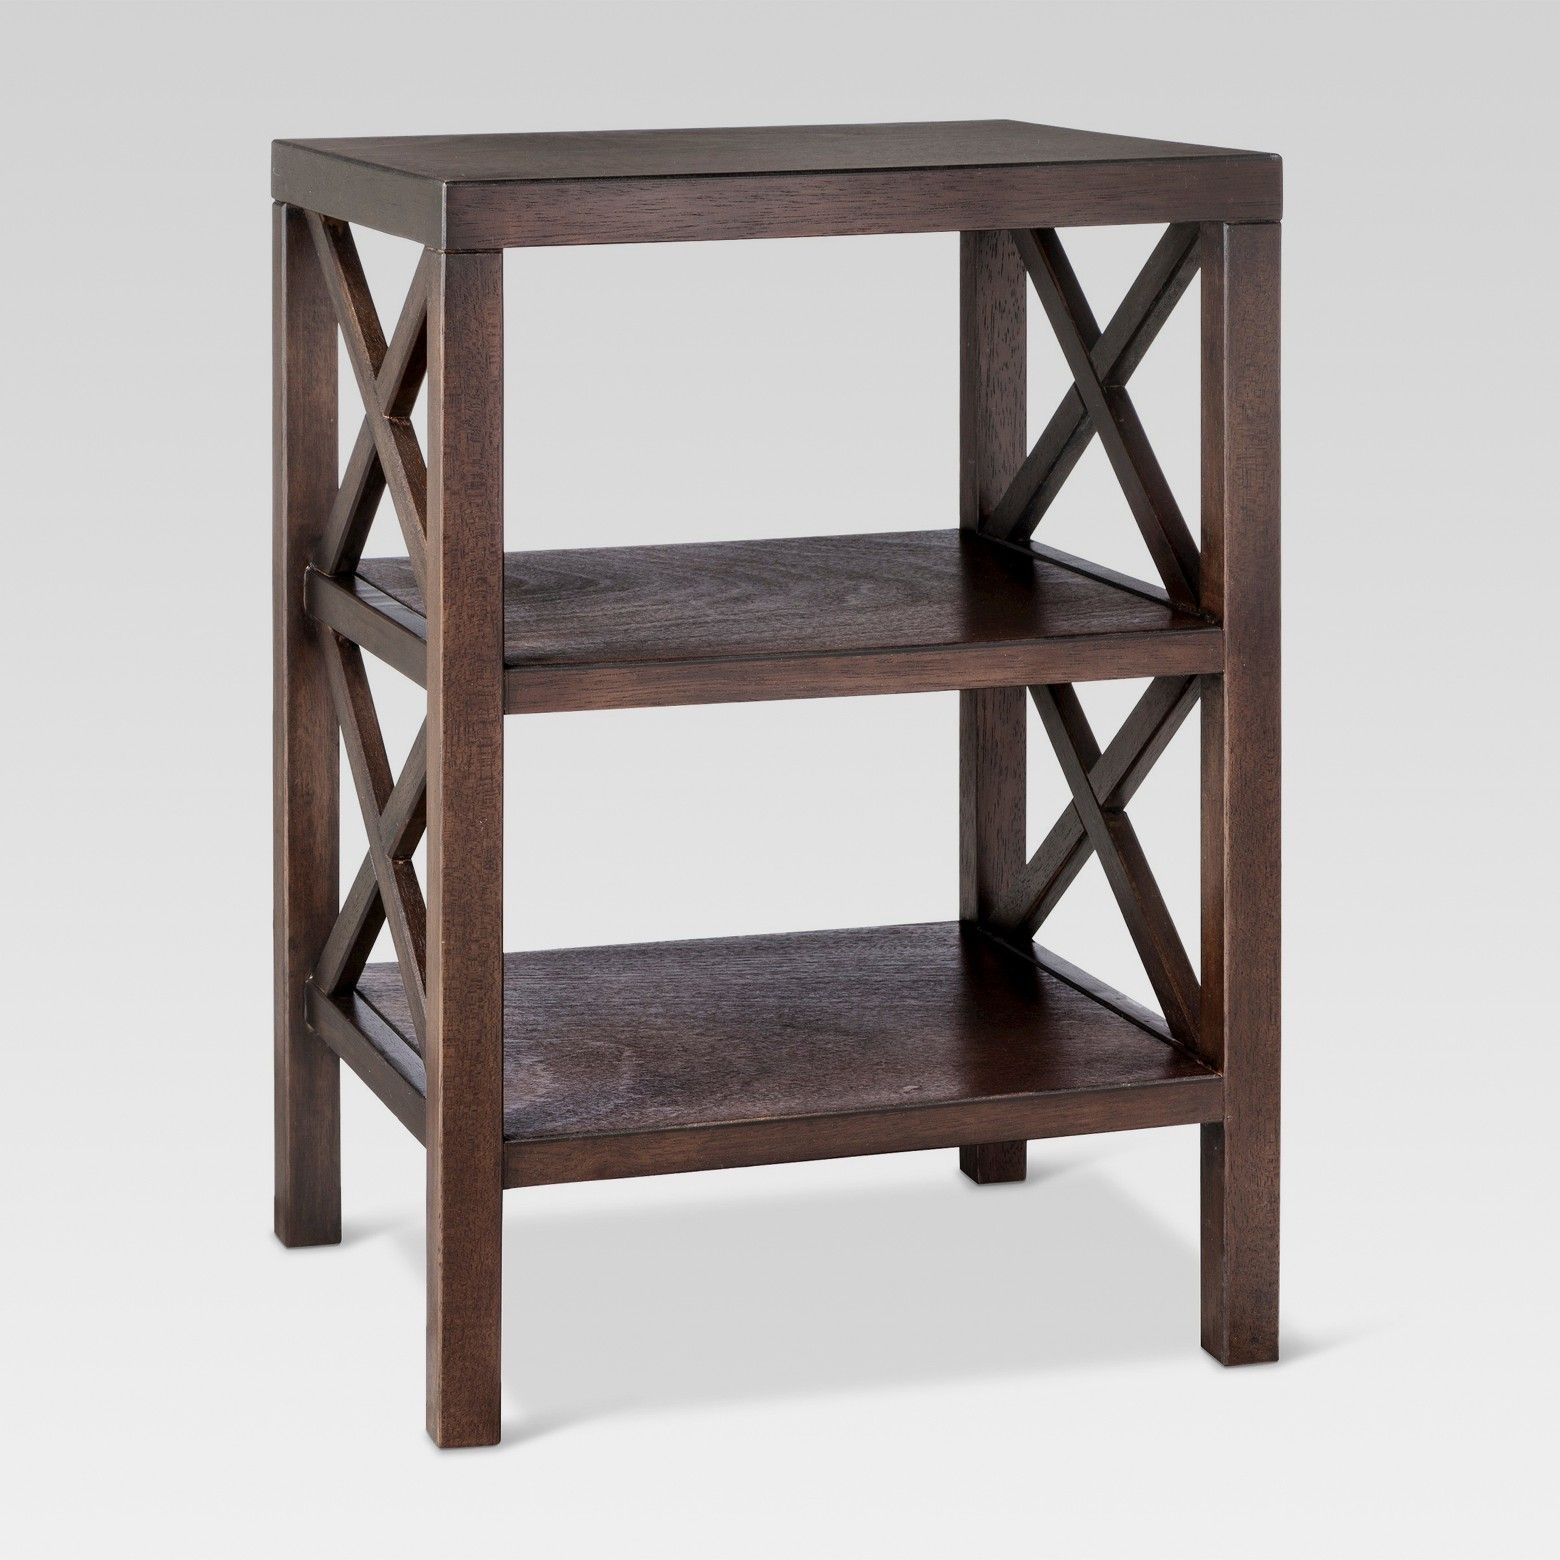 threshold accent table espresso small storage and pipe desk pottery barn sofa black end umbrella chairs walnut outside patio furniture covers tall skinny lamps round dining for